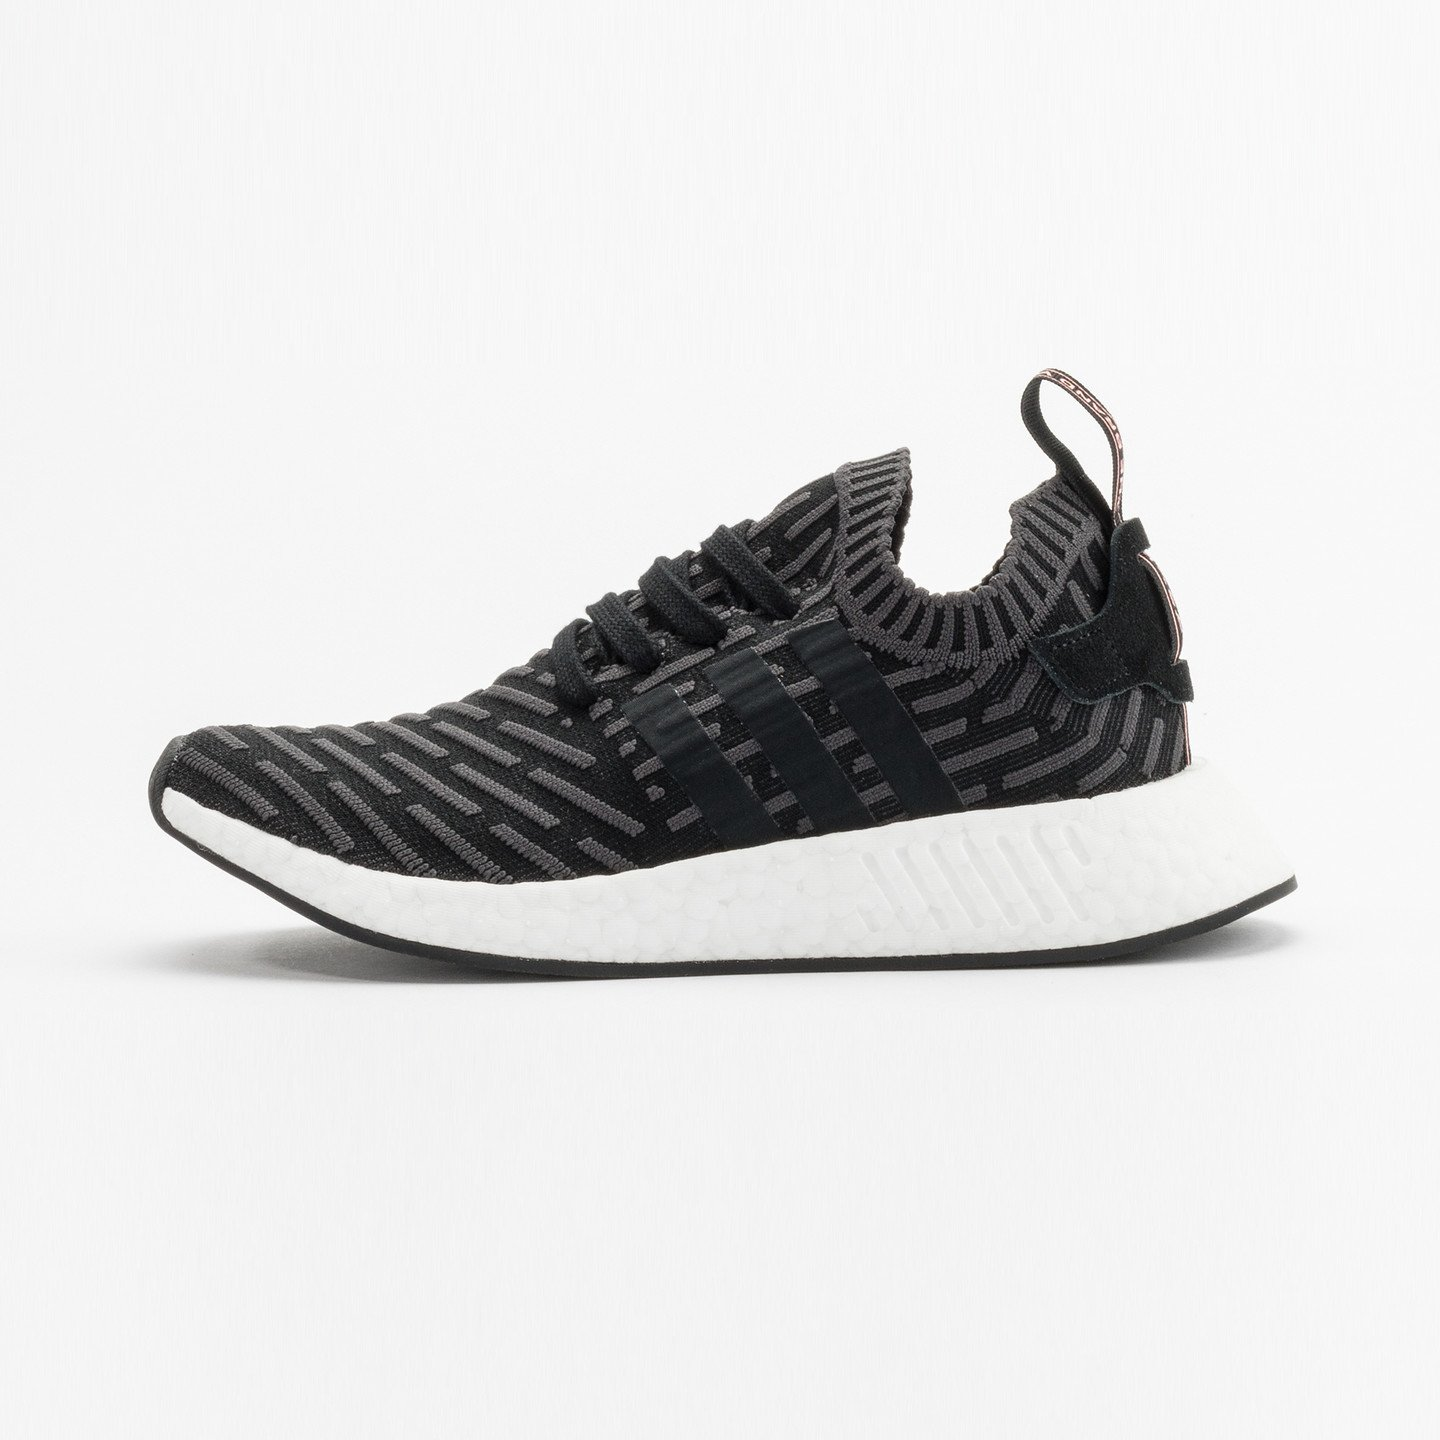 Adidas NMD R2 PK W Utility Black / Core Black / Light Peach BA7239-38.66